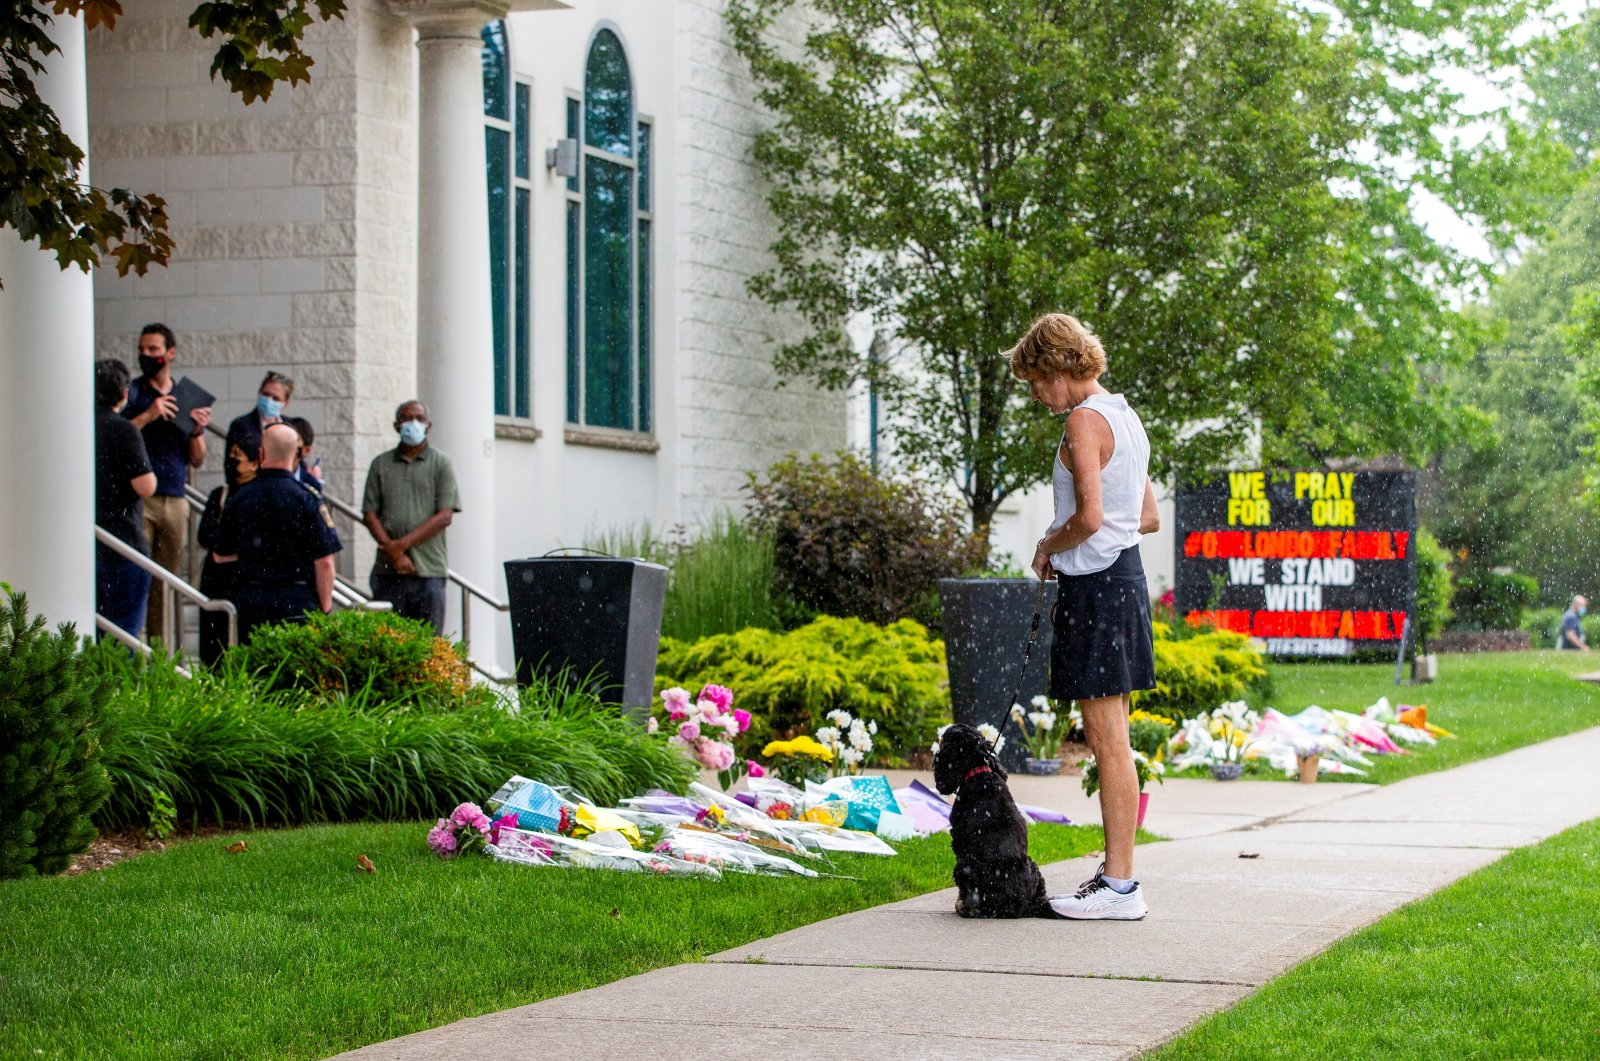 A woman pays her respects at the London Muslim Mosque, which is located about 500 meters from where police arrested the suspect of a hate-motivated Islamophobic terror attack that killed four members of a Muslim family, in London, Ontario, Canada, June 8, 2021. (Reuters Photo)